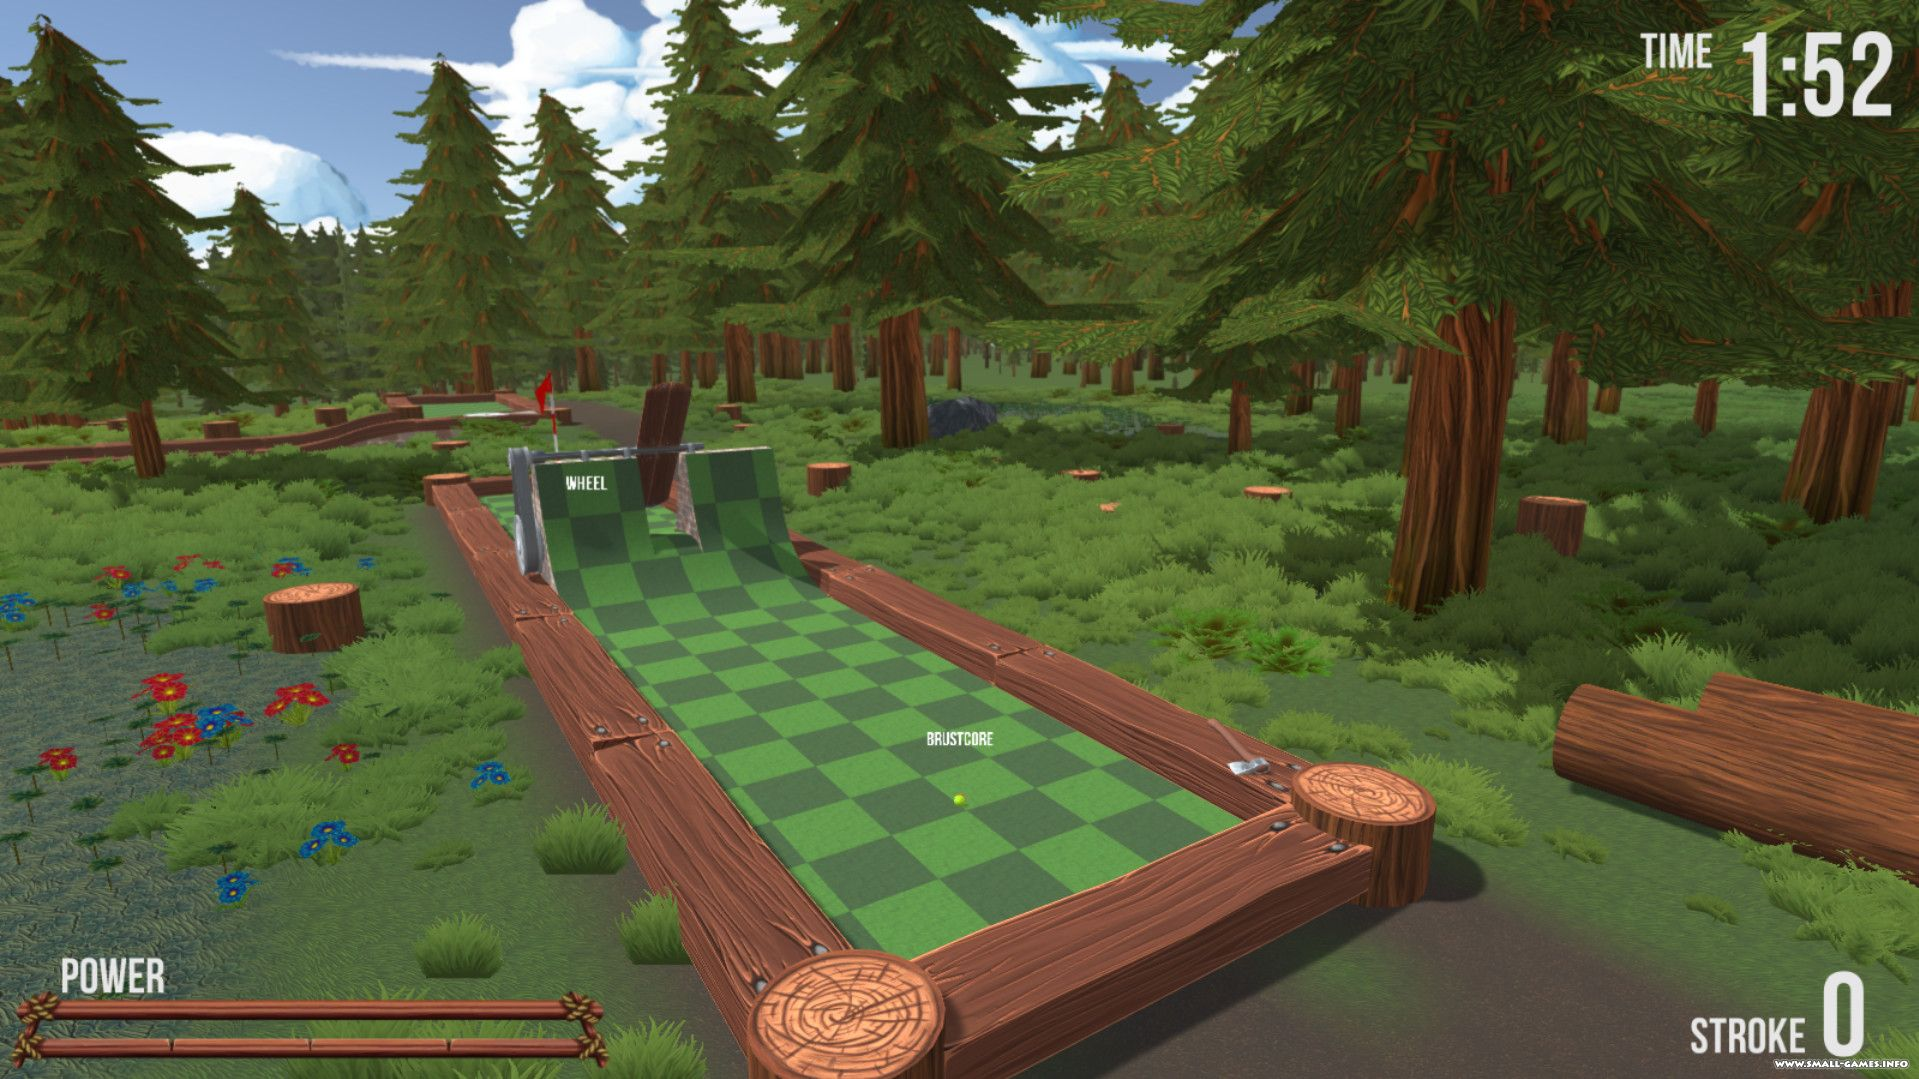 Golf with your friends v0. 0. 98. 1 [steam early access] торрент.